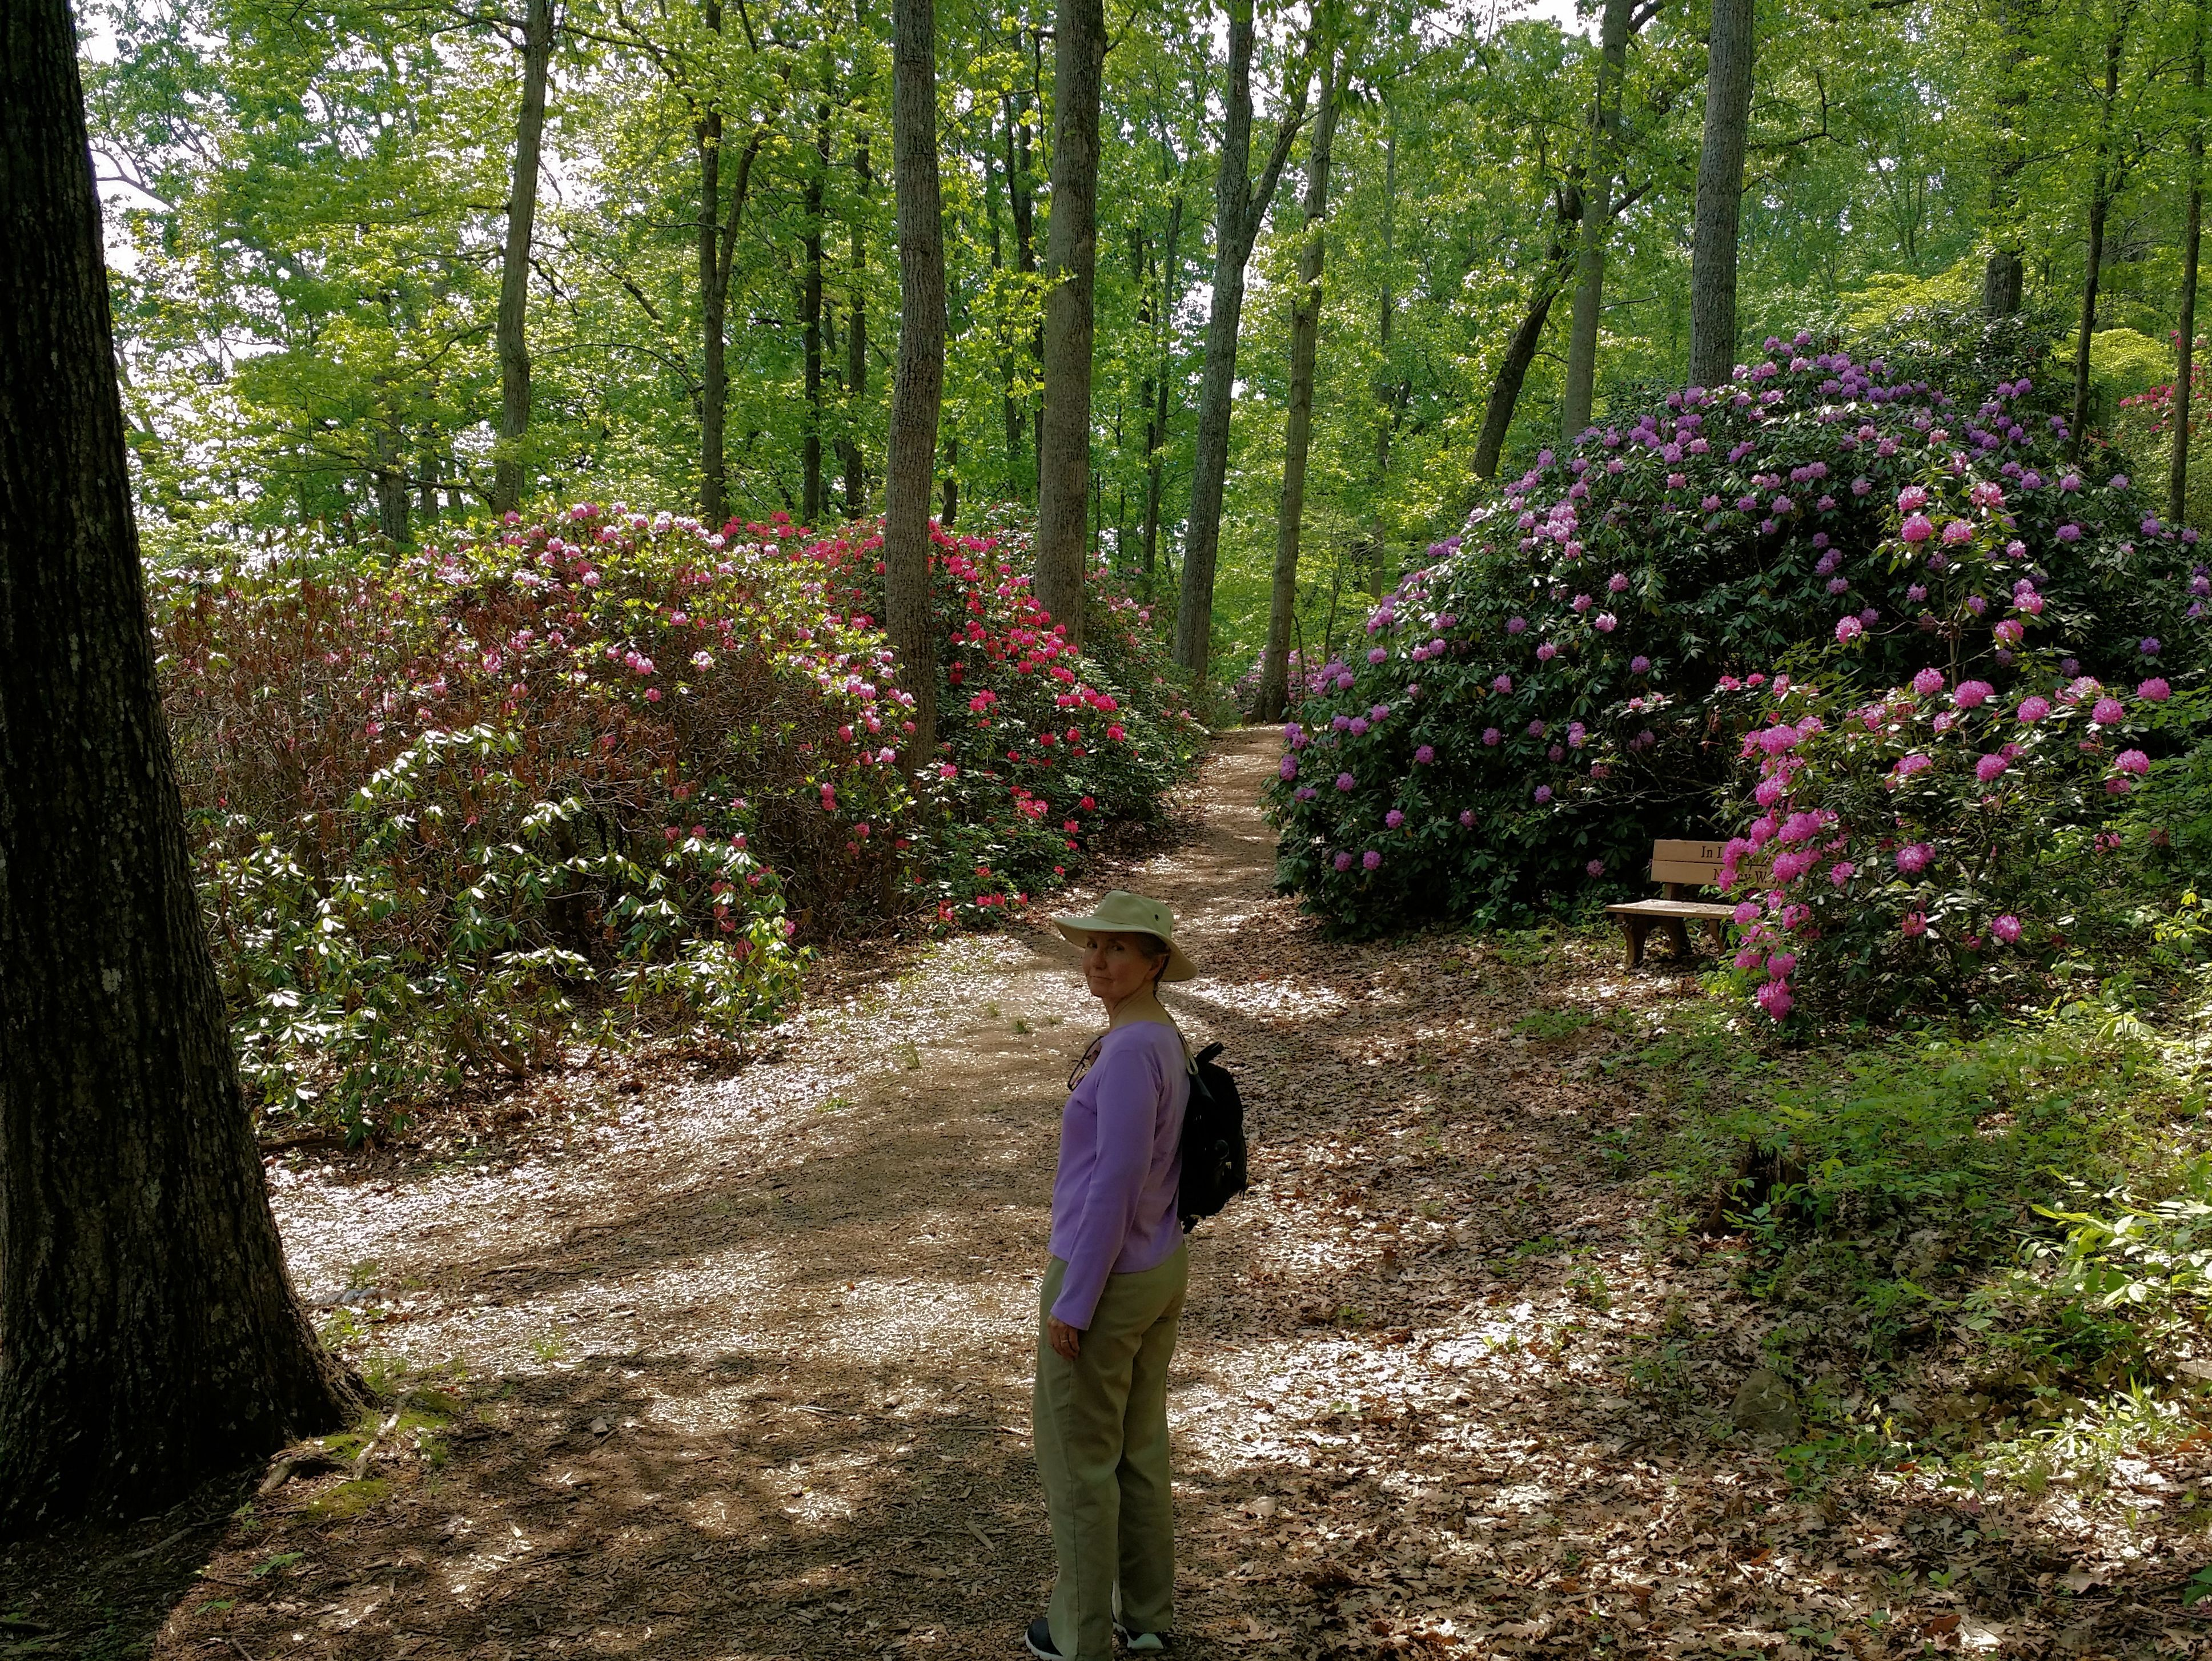 Rhododendrons at Hamilton gardens in Hiawassee, Towns